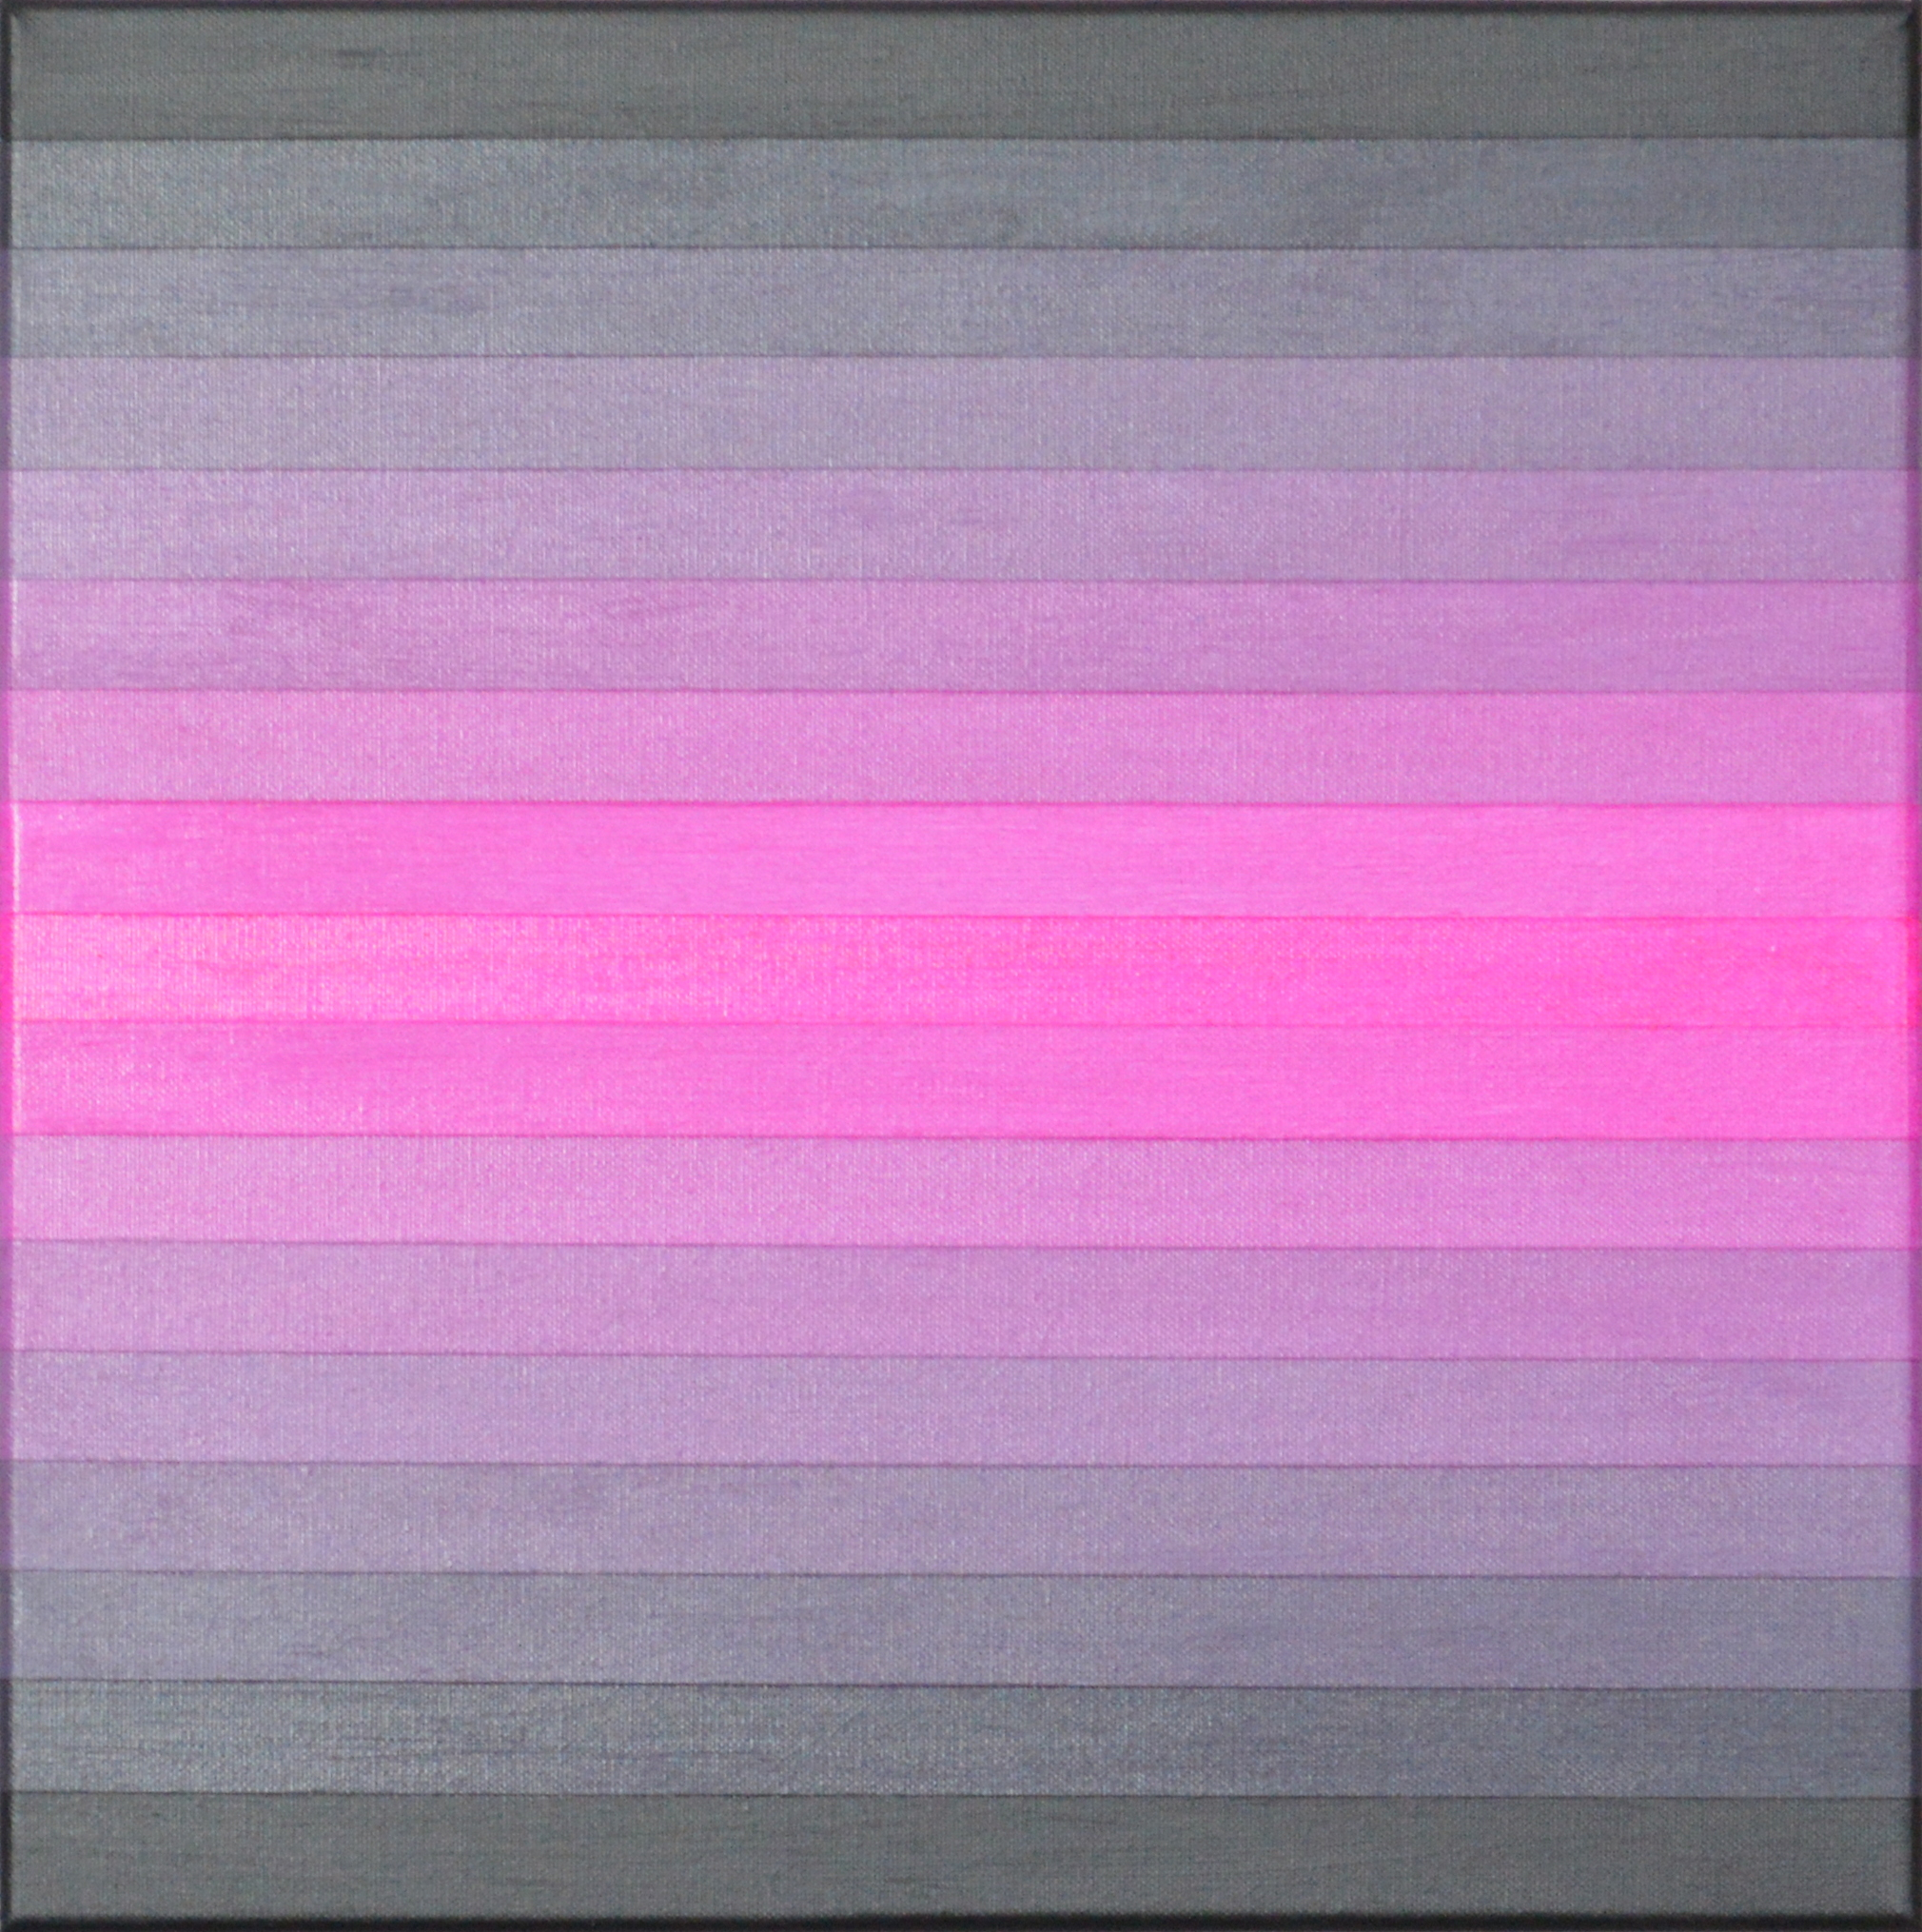 17, black white and magenta, 2015 Acrylic on canvas 40 x 40 cm